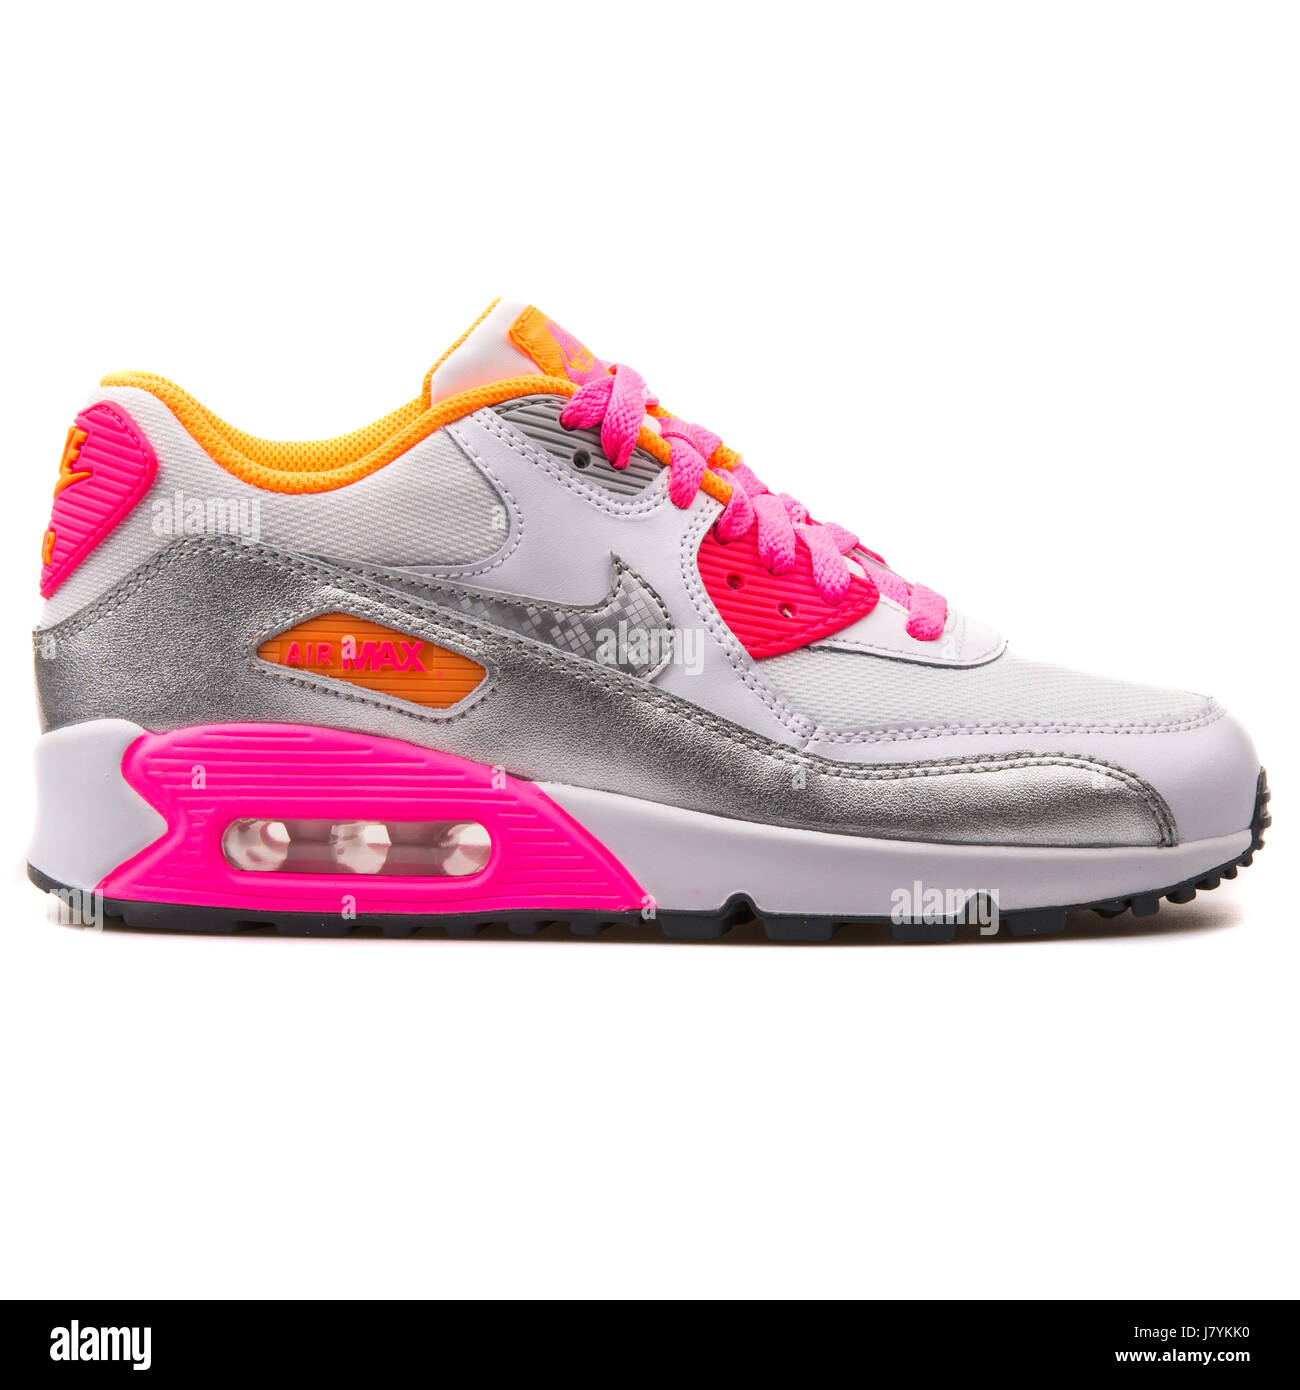 new concept 11269 6ad57 Nike Air Max 90 Mesh (GS) Youth White, Silver and Pink Running Sneakers